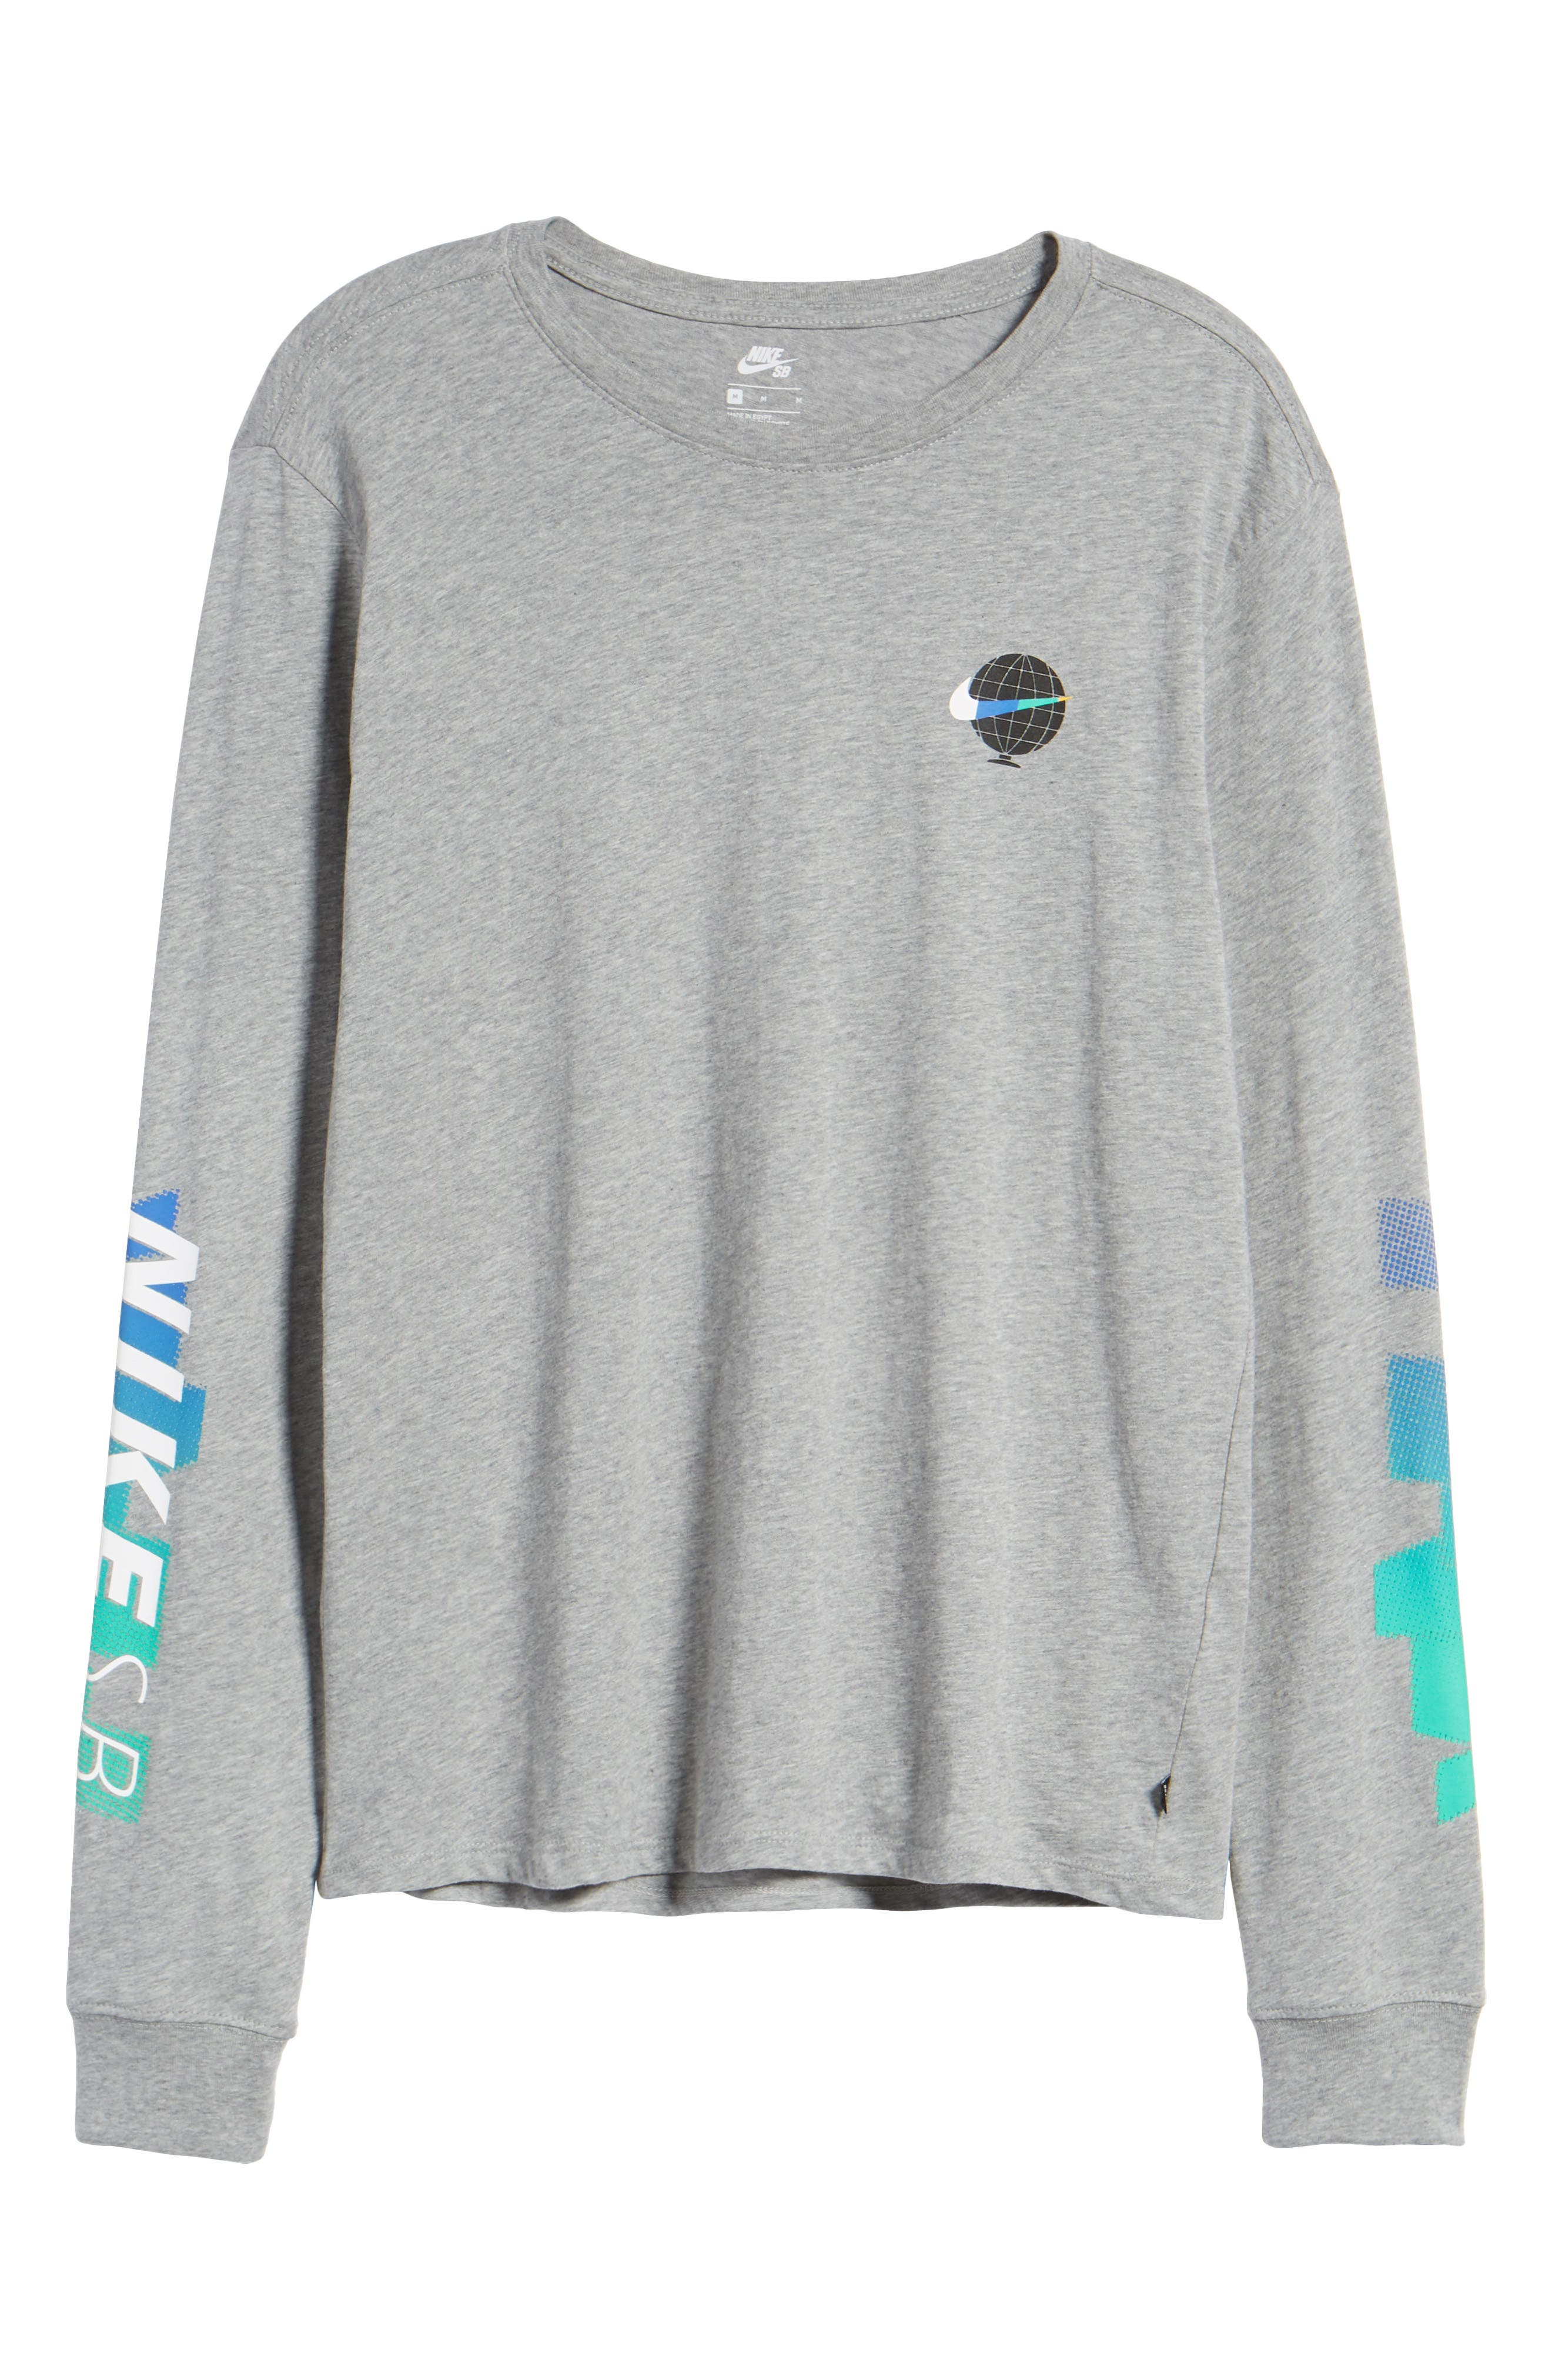 SB Globe Graphic Long Sleeve T-Shirt,                             Alternate thumbnail 5, color,                             Dark Grey Heather